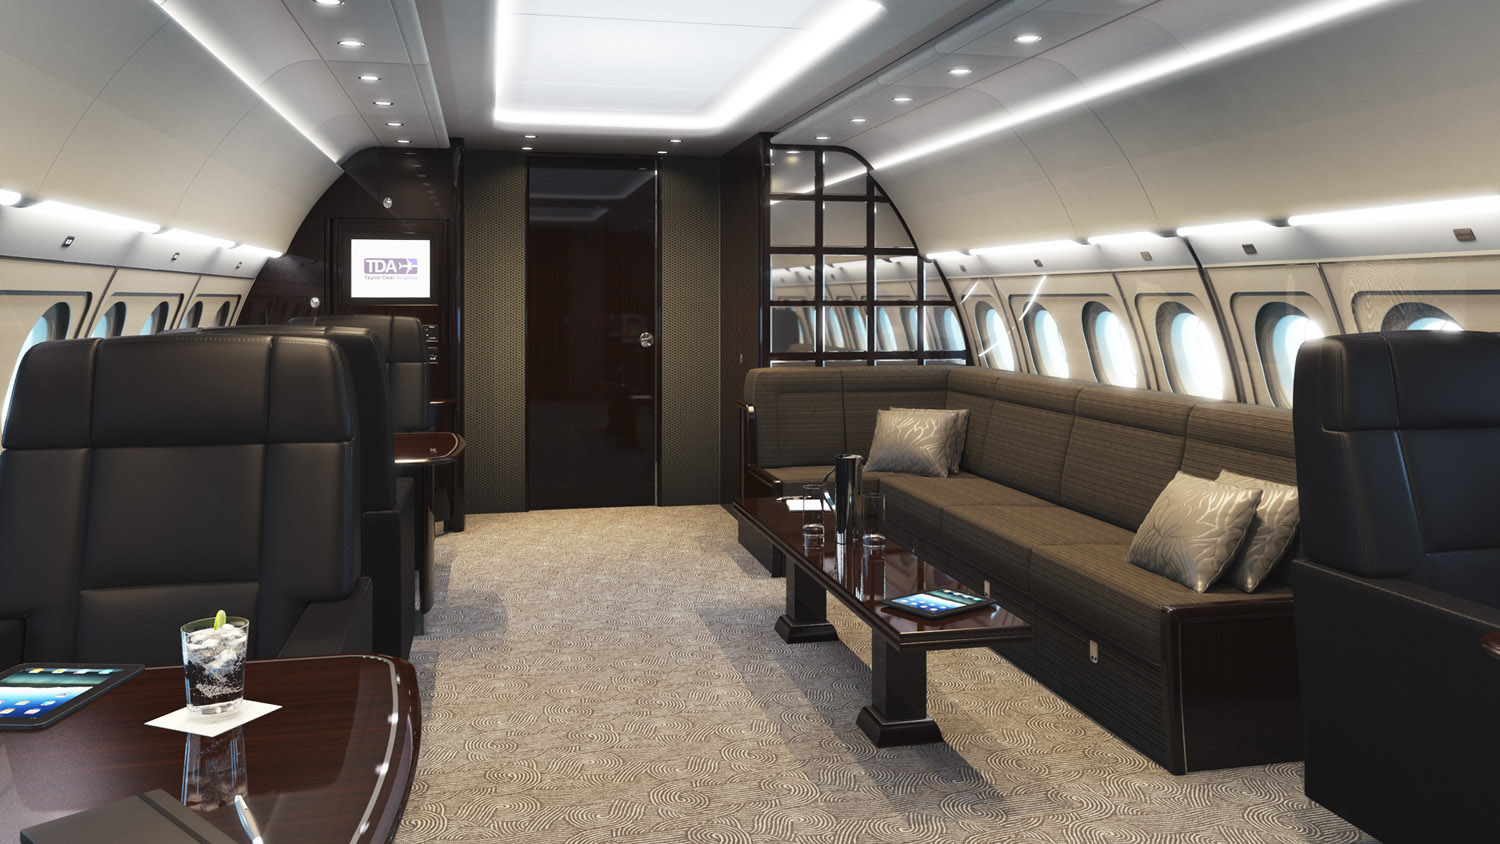 Aircraft Interior 3d Model Plane Interior 3d Model Rendering